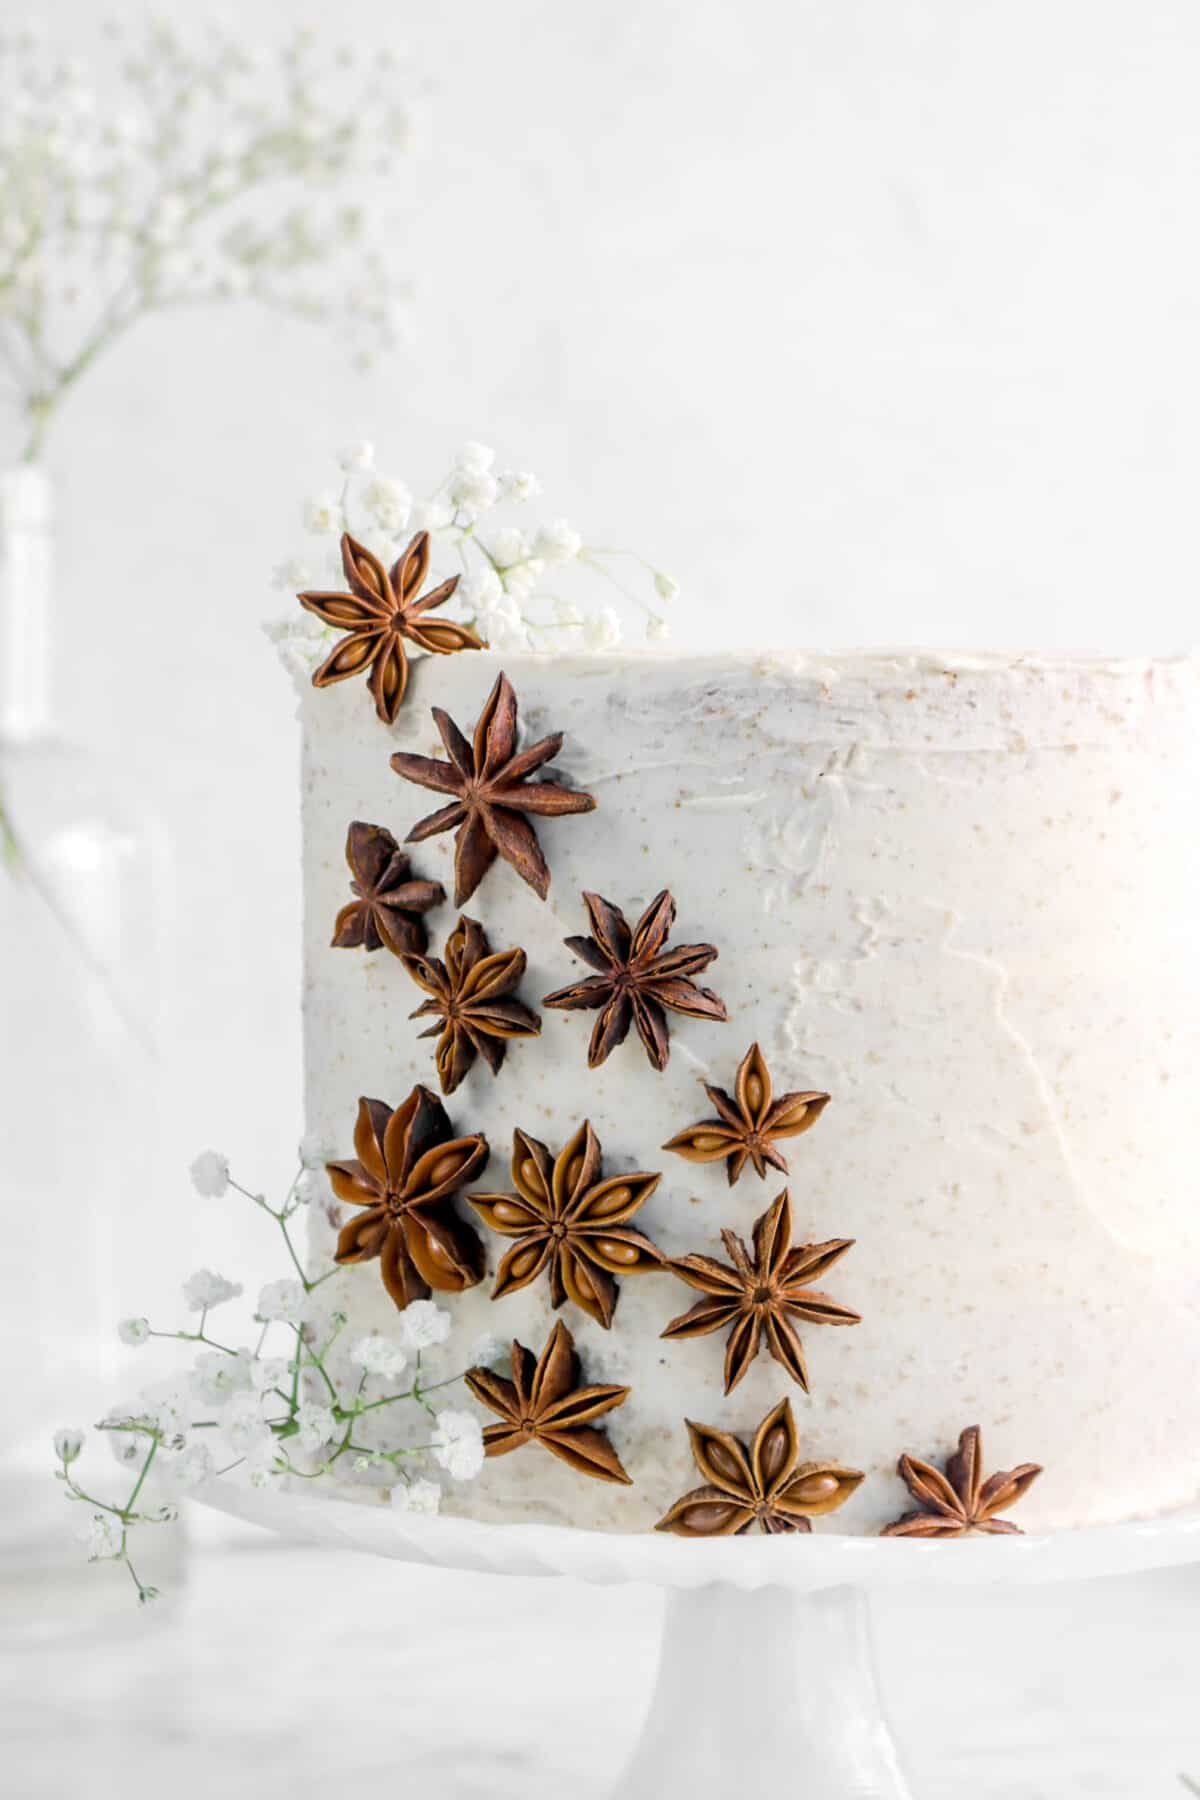 pumpkin spice cake with star anise and flowers